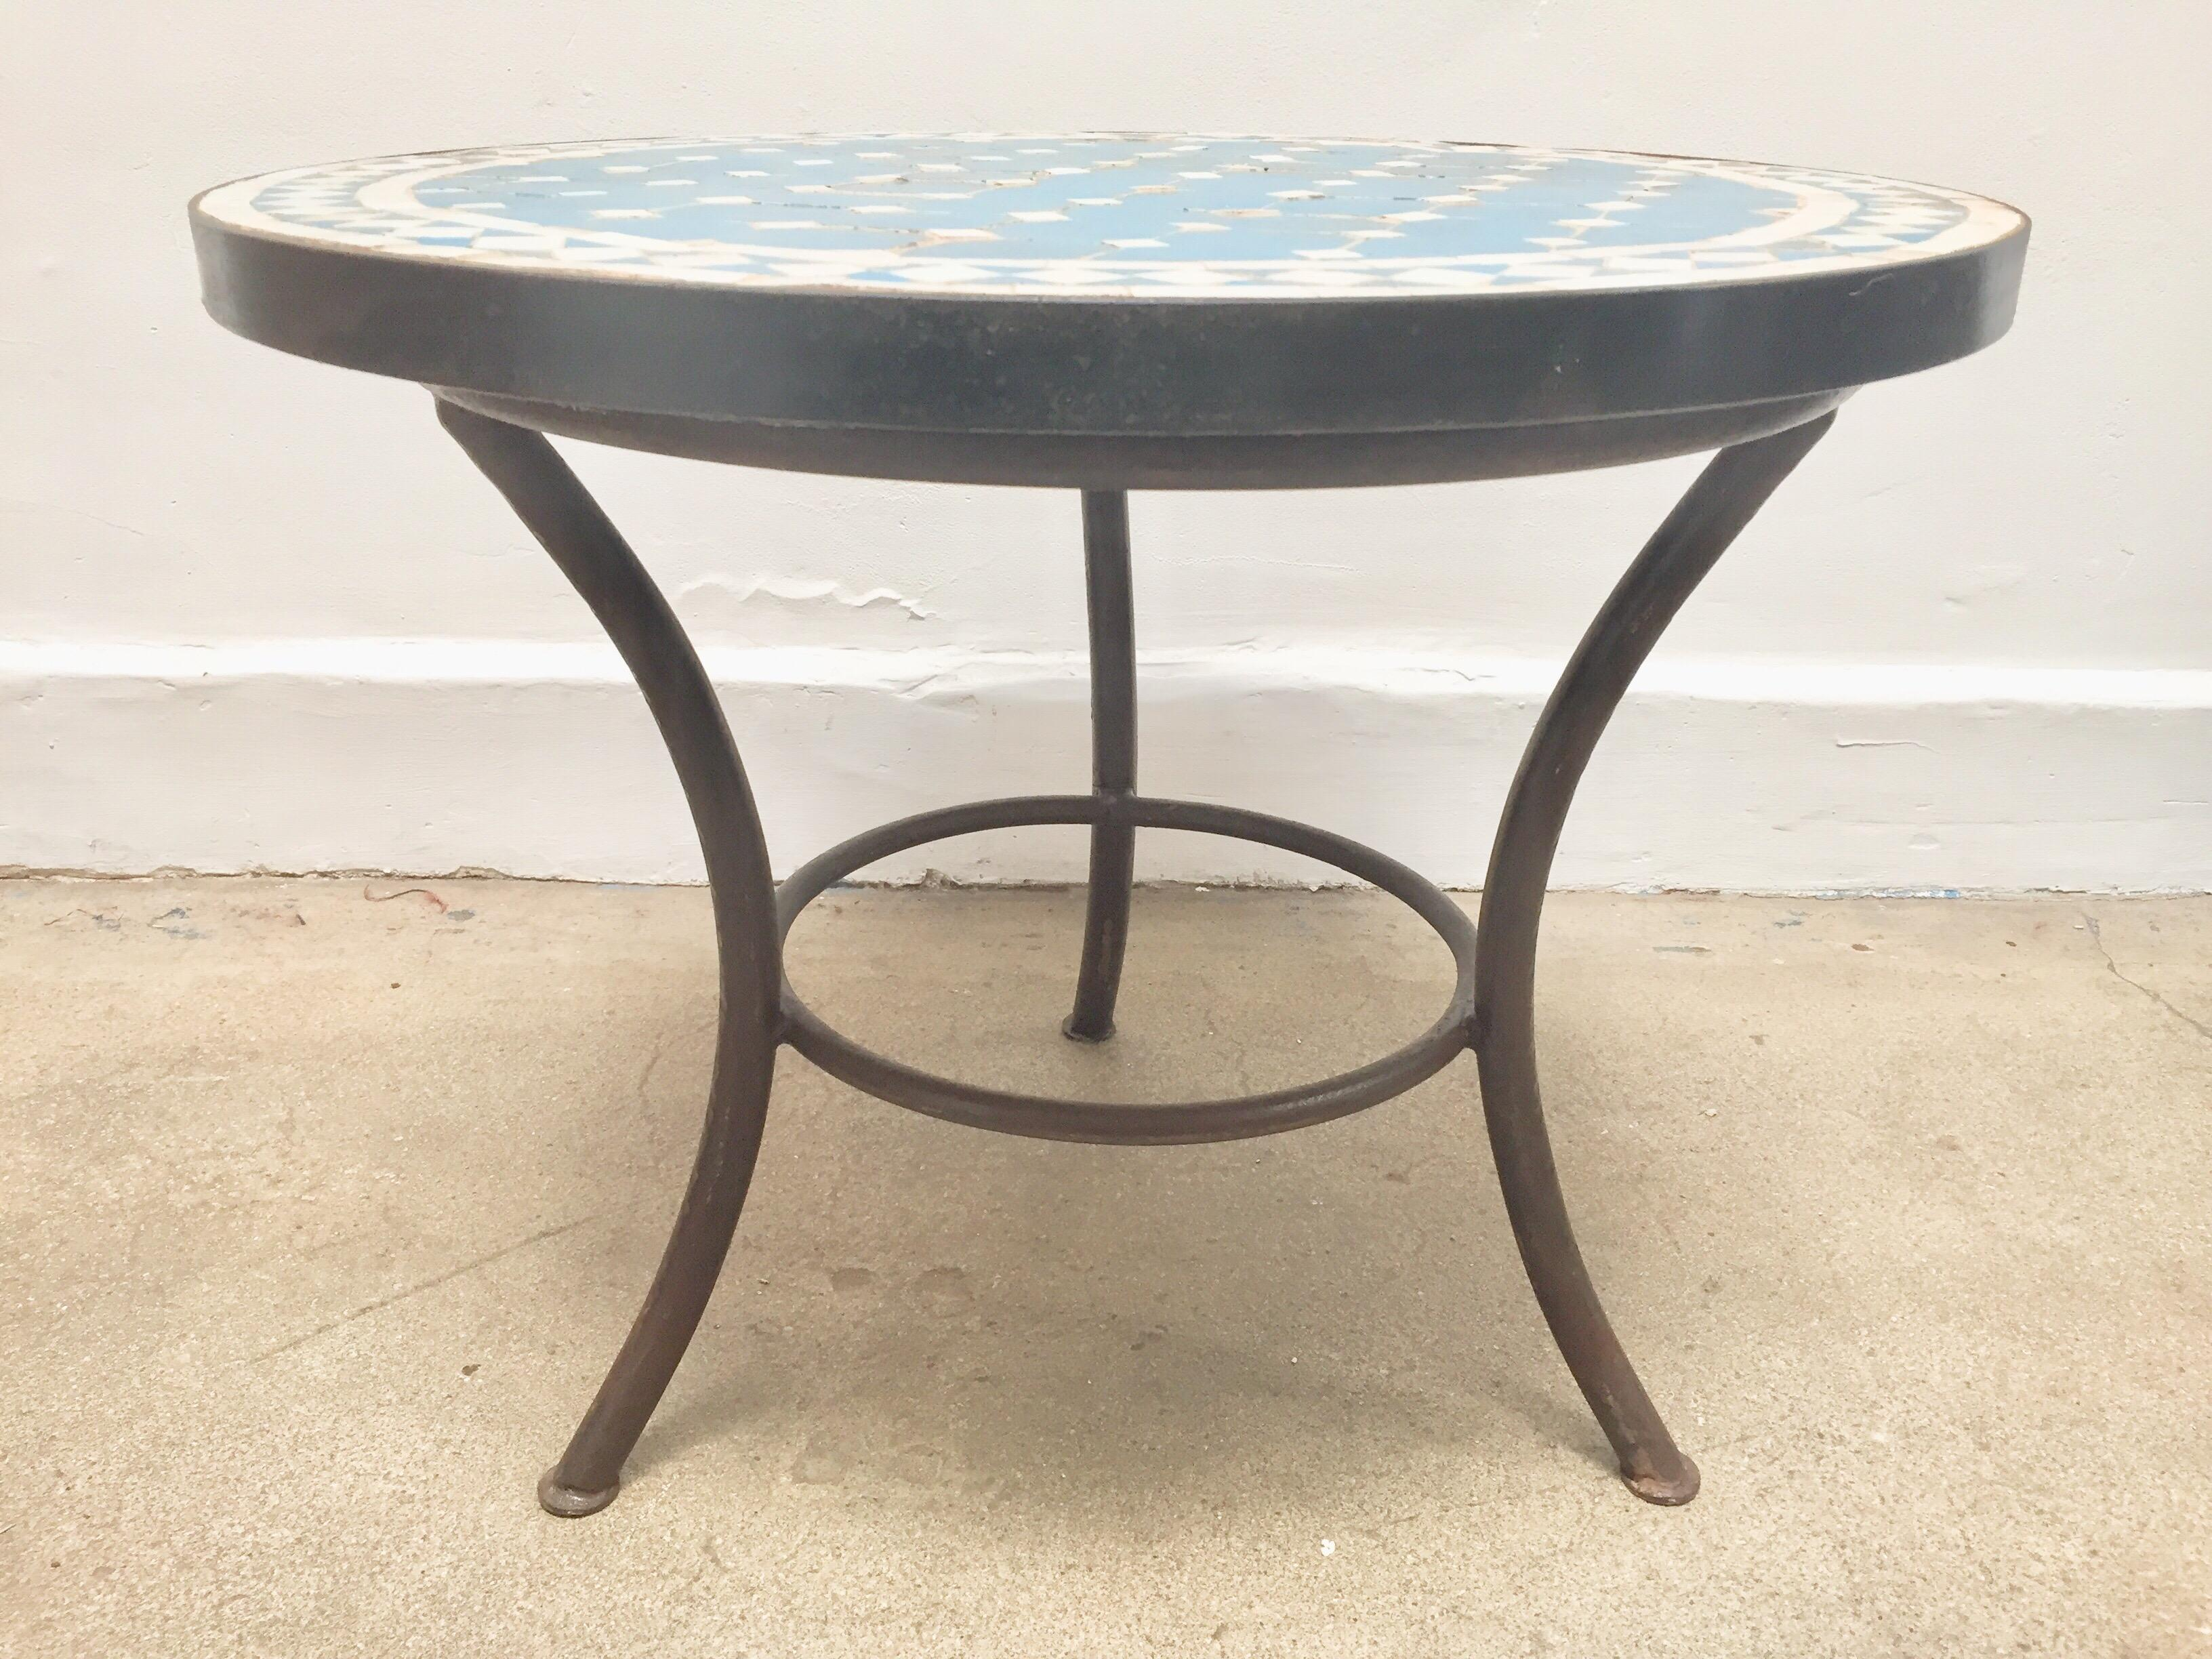 Moroccan Mosaic Outdoor Blue Tile Side Table On Low Iron Base For Sale In  Los Angeles